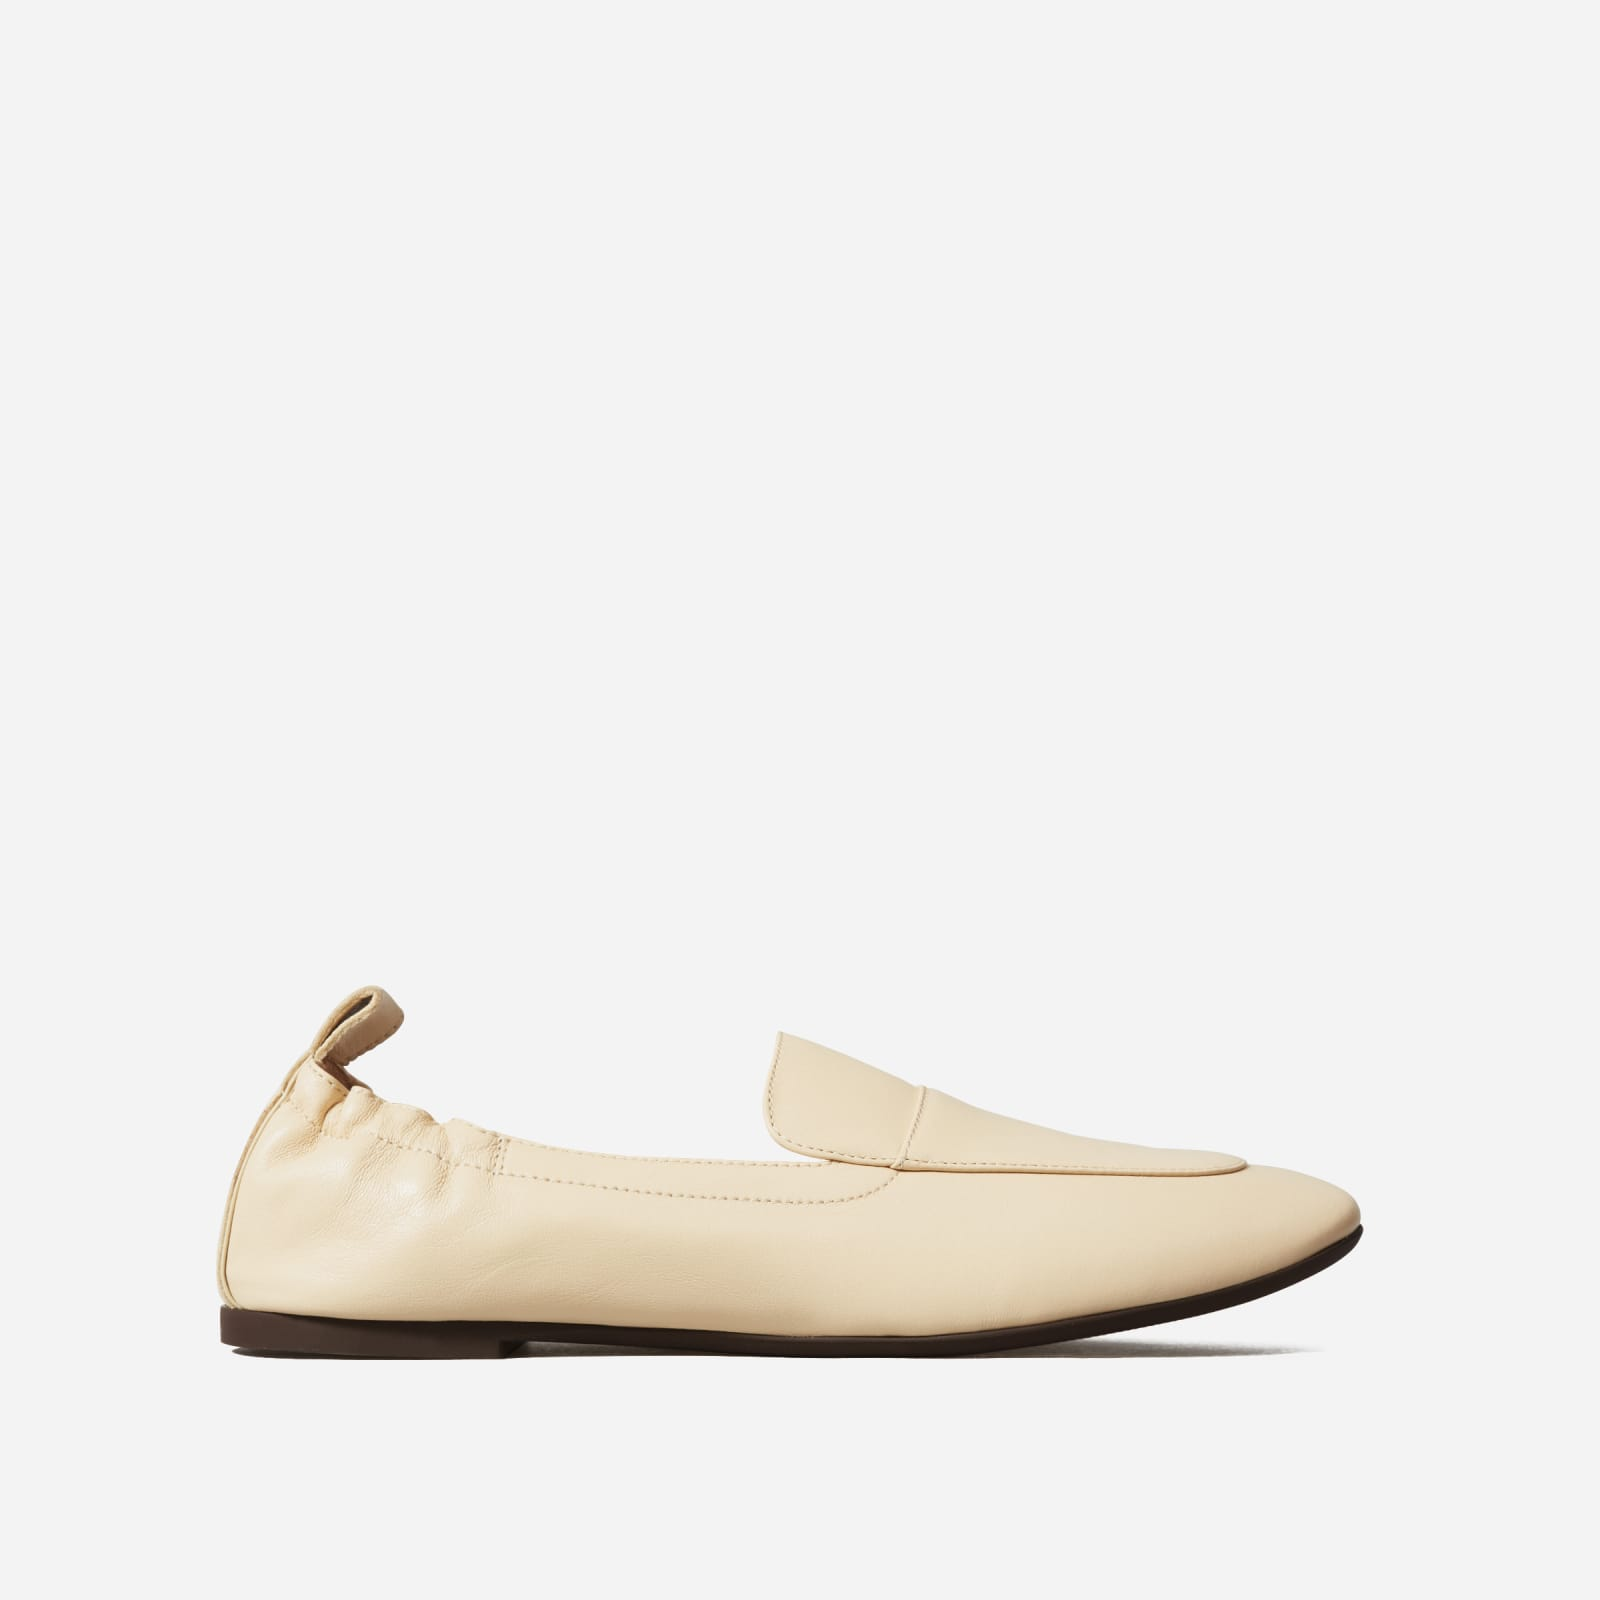 leather driving loafers by everlane in cashew, size 5